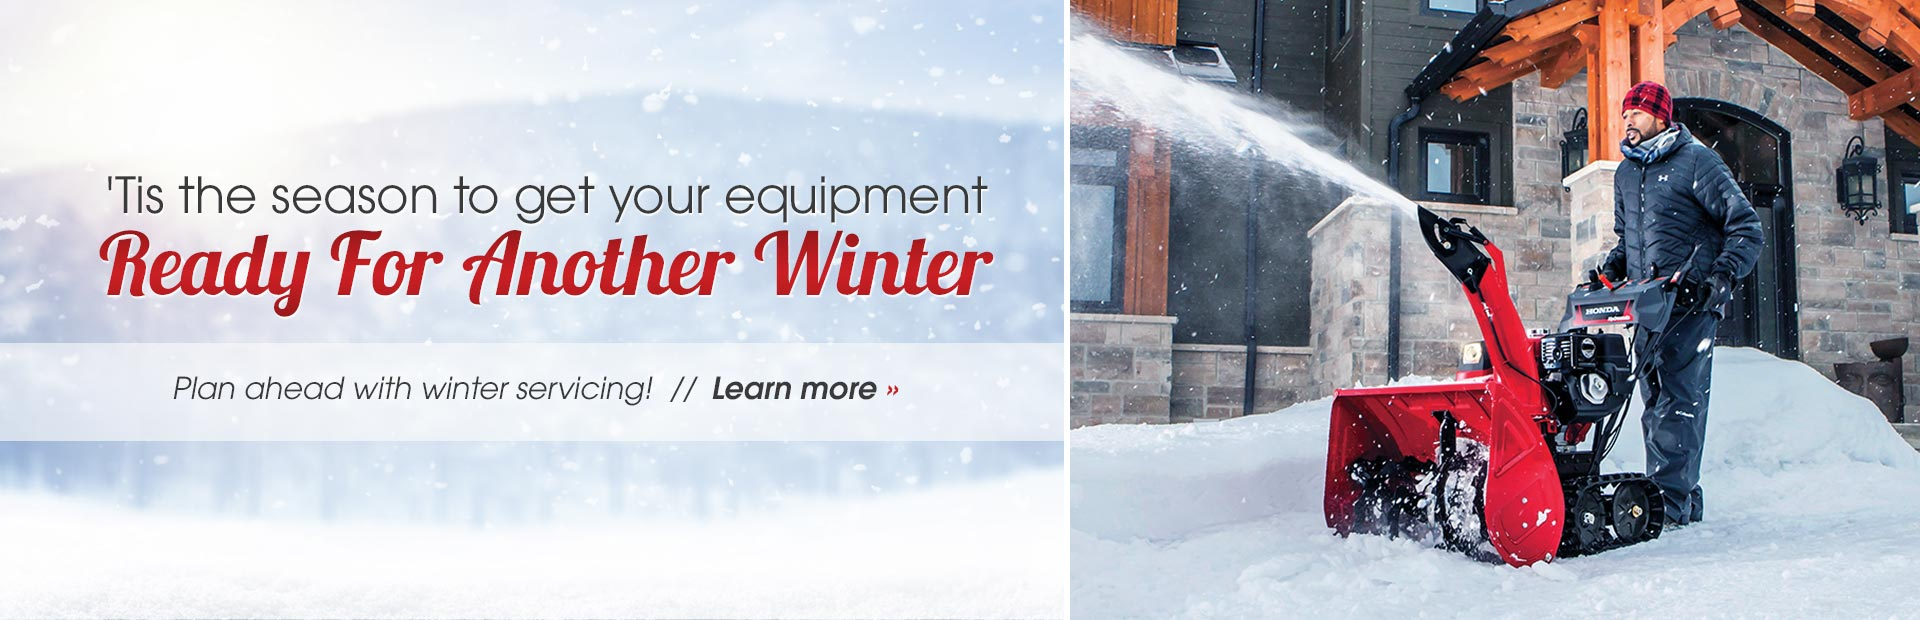 'Tis the season to get your equipment ready for another winter! Plan ahead with winter servicing! Cl